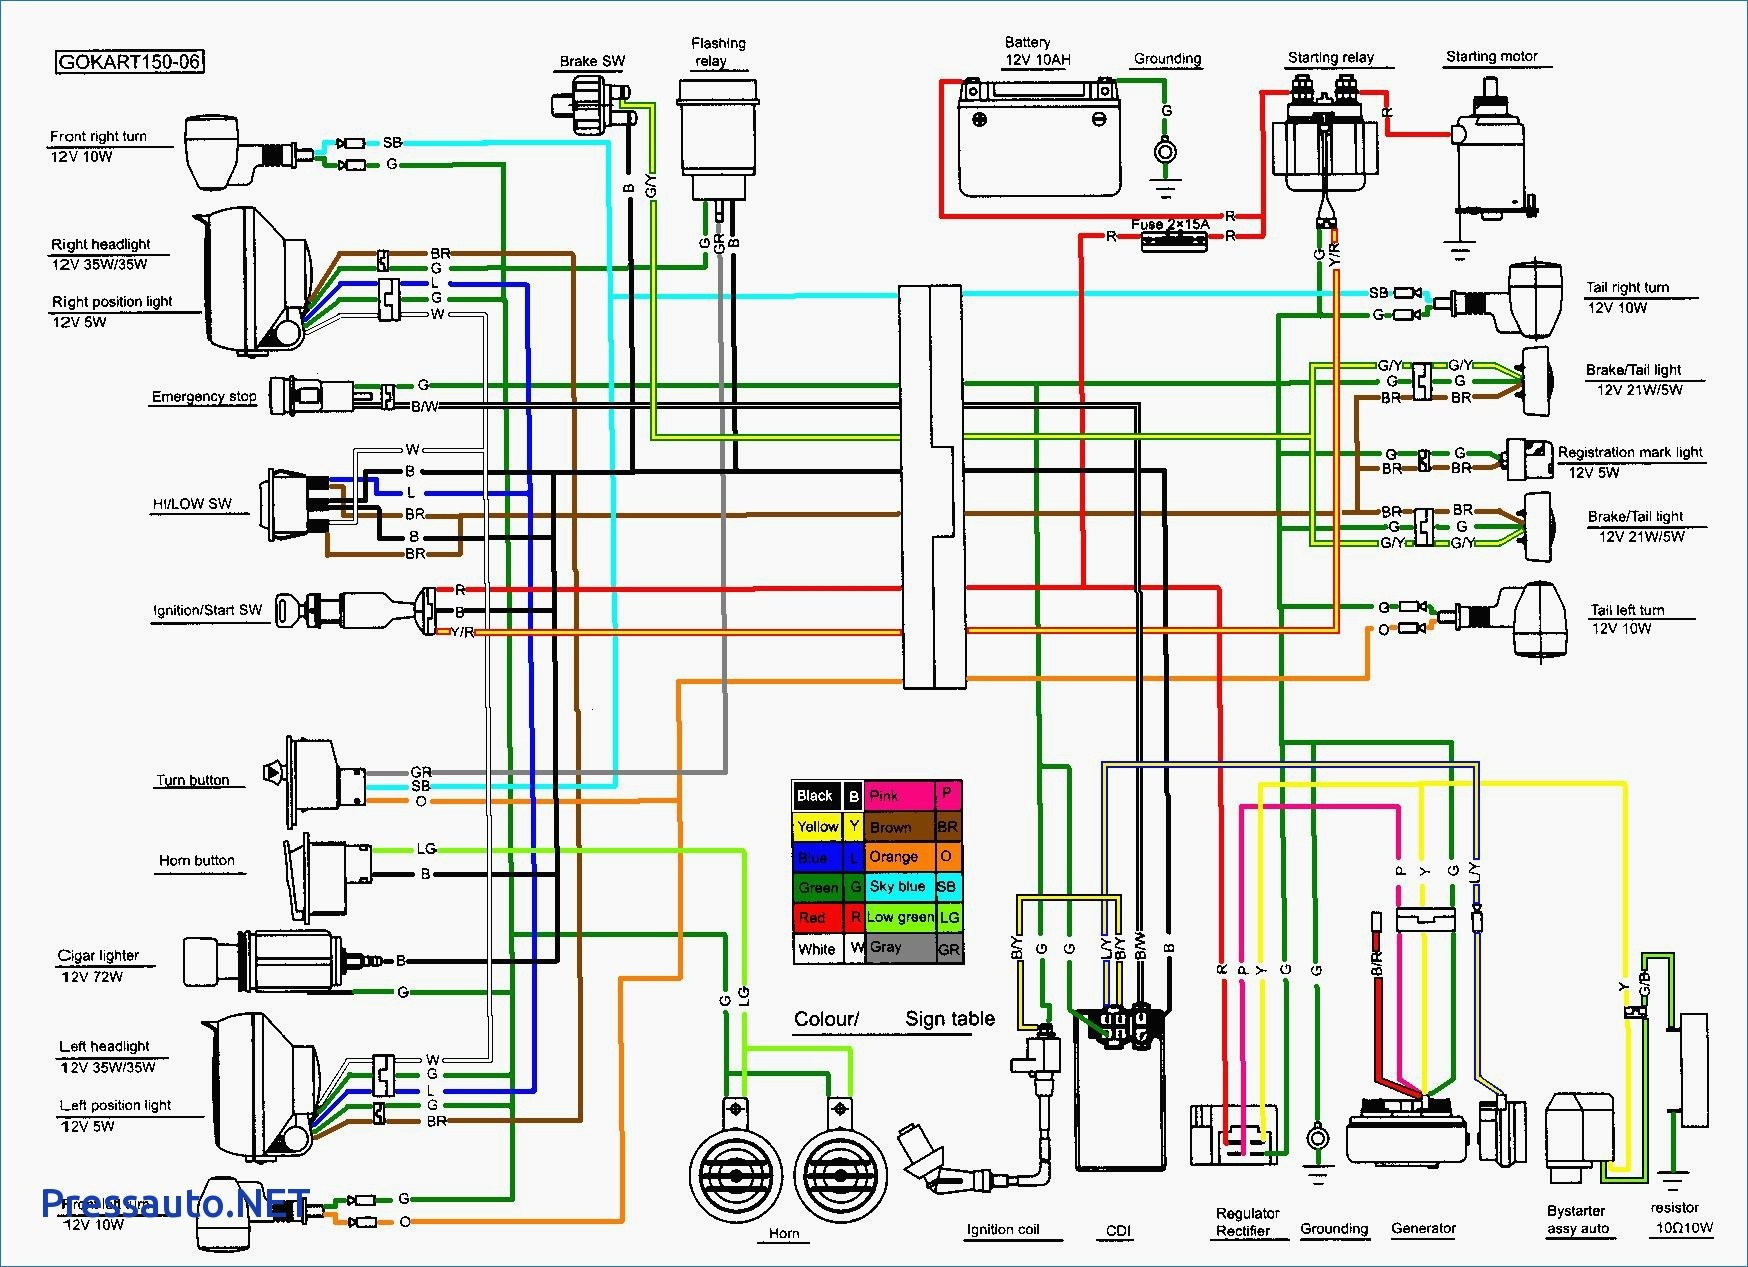 Wiring Diagram For Loncin 110 With 5 Pin Cdi | Wiring Diagram - 5 Pin Cdi Wiring Diagram